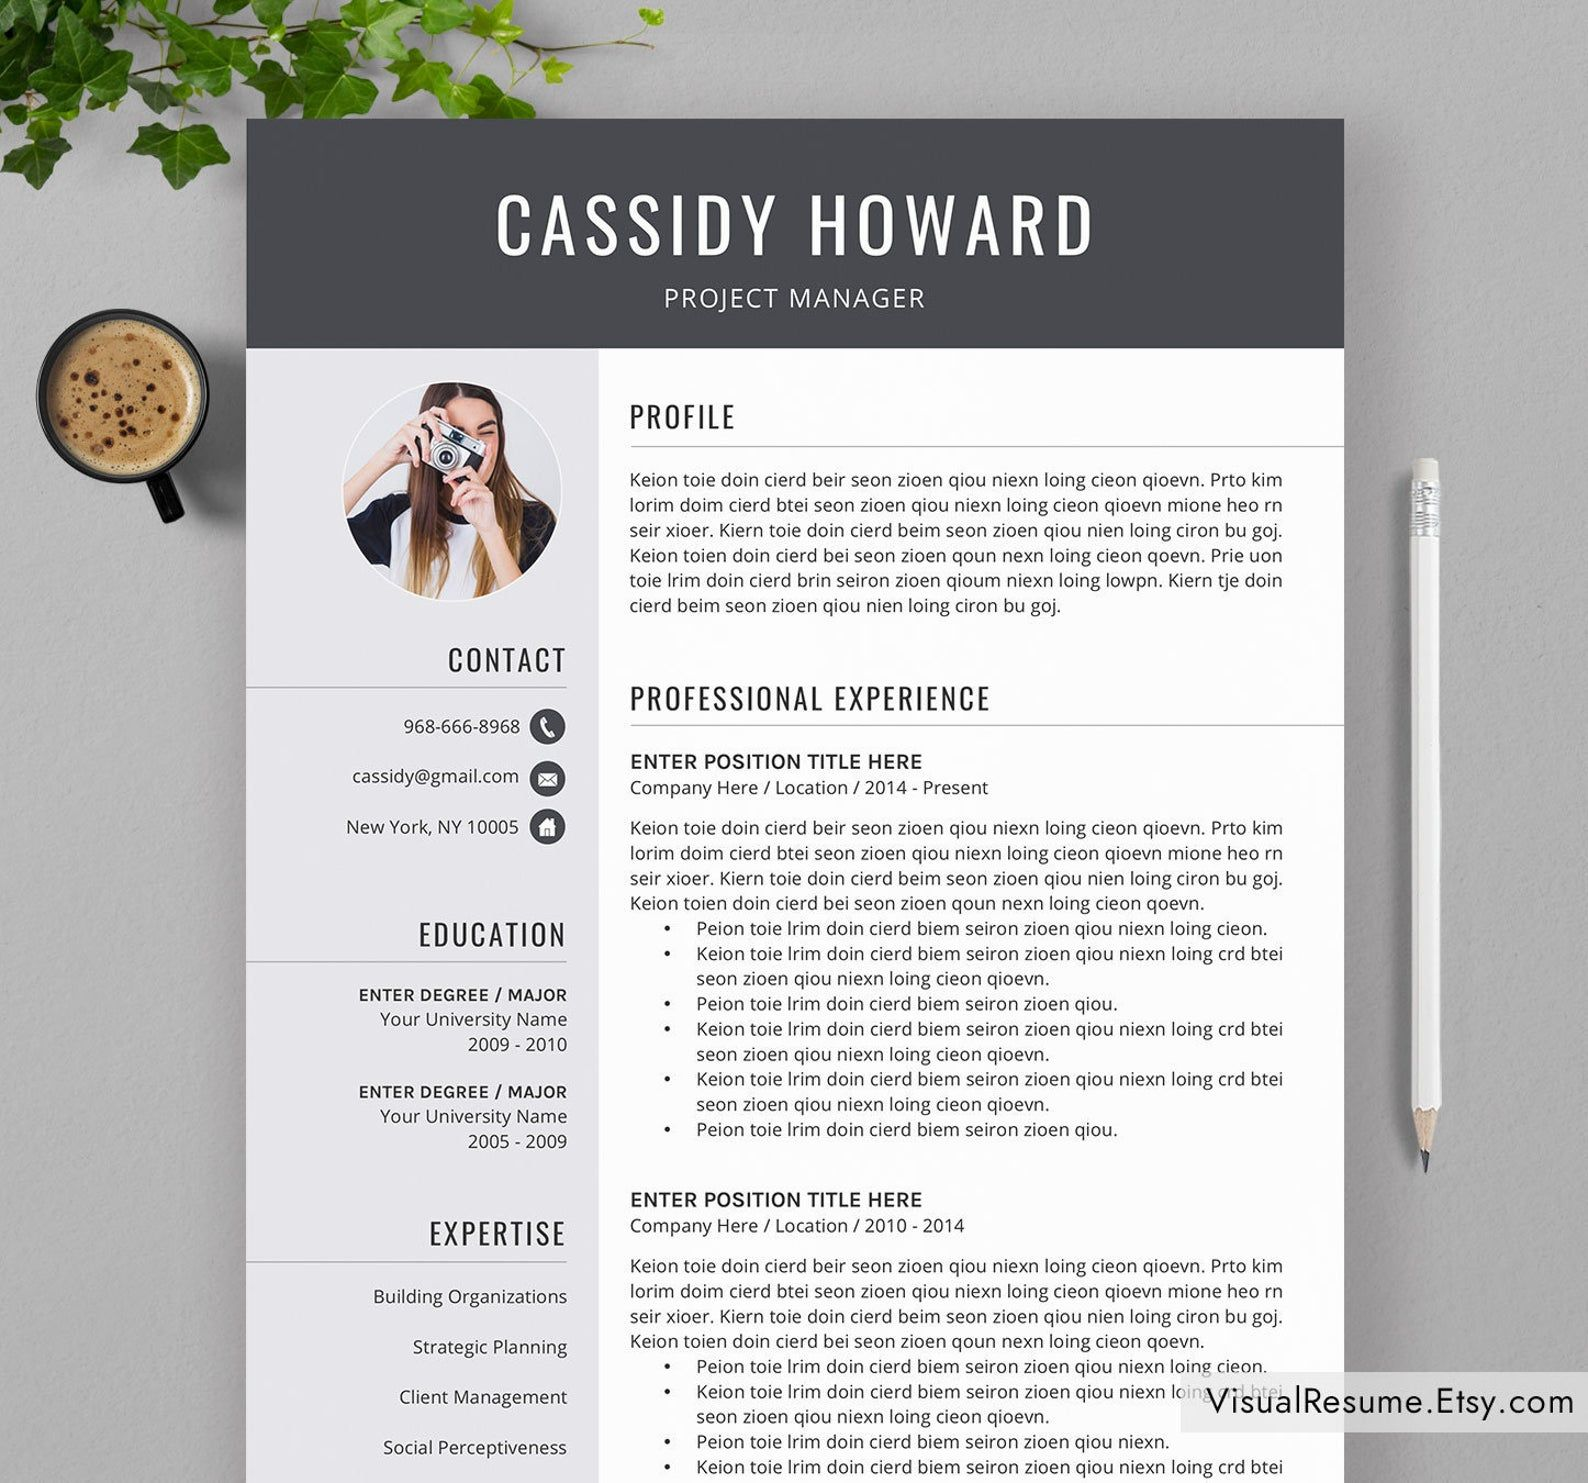 Professional Resume Template For Ms Word Creative Cv Etsy En 2021 Template Cv Etsy Resume